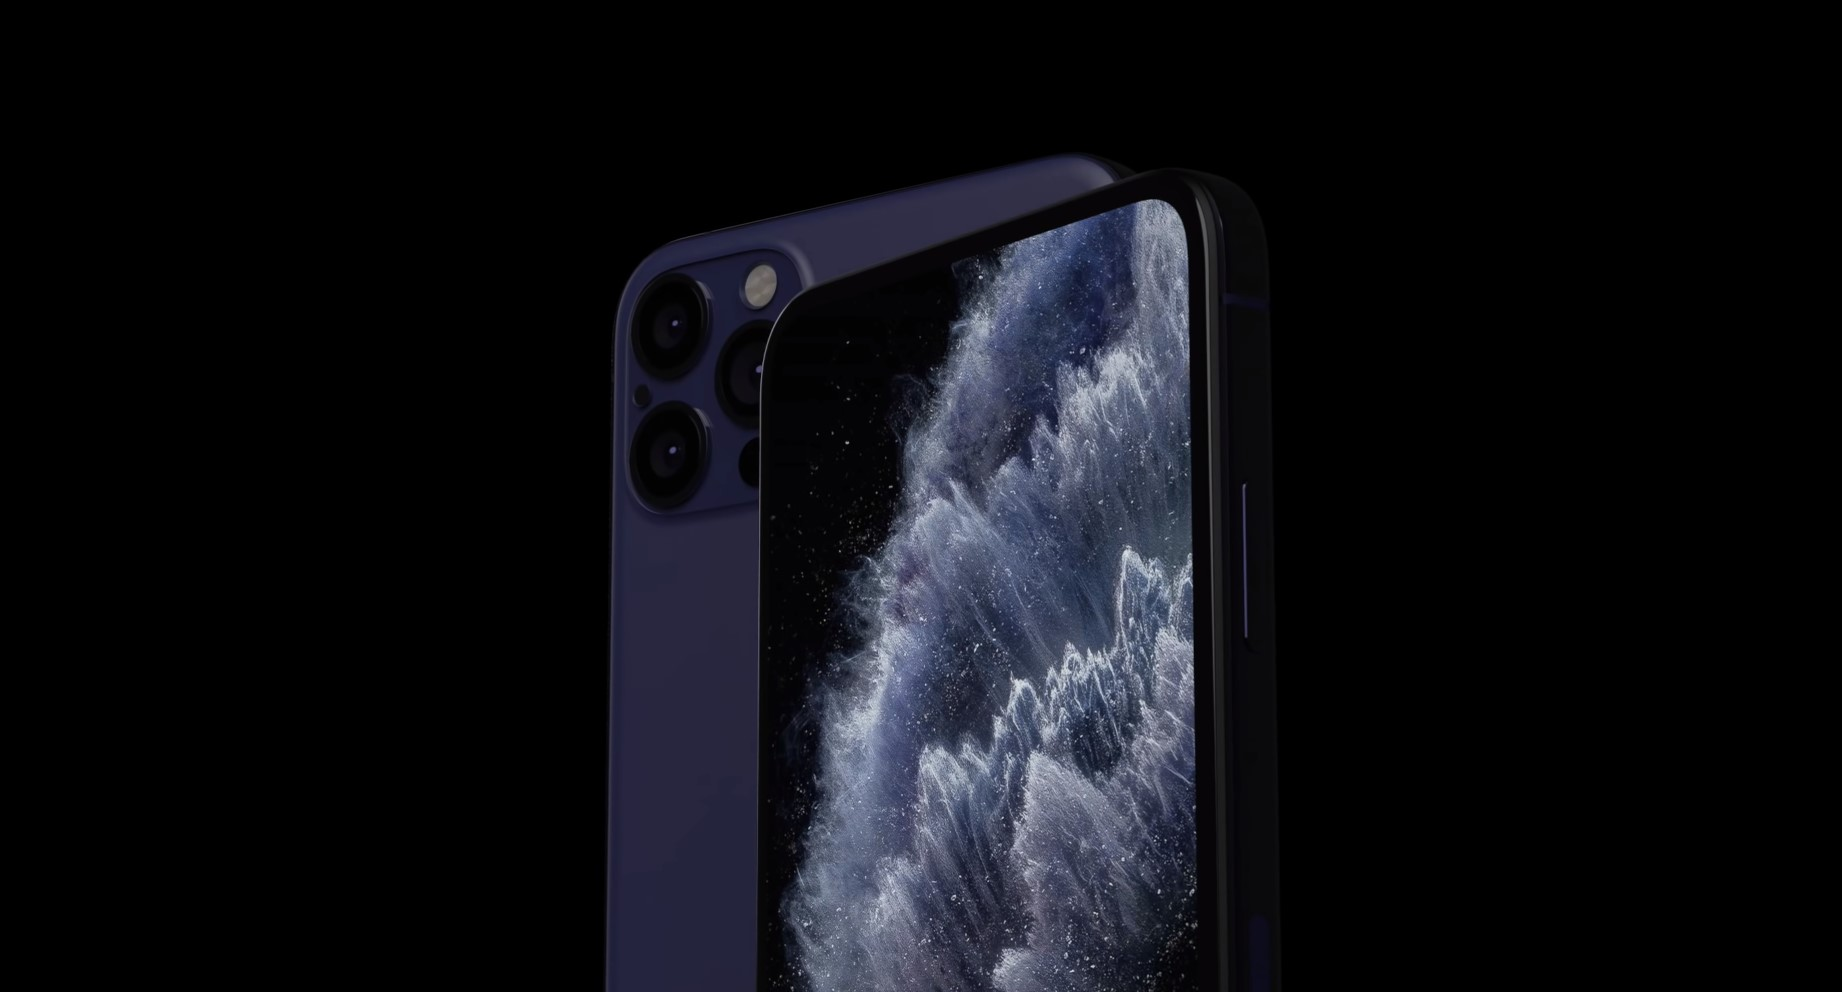 iPhone 12 series might not arrive with 120Hz refresh rate displays